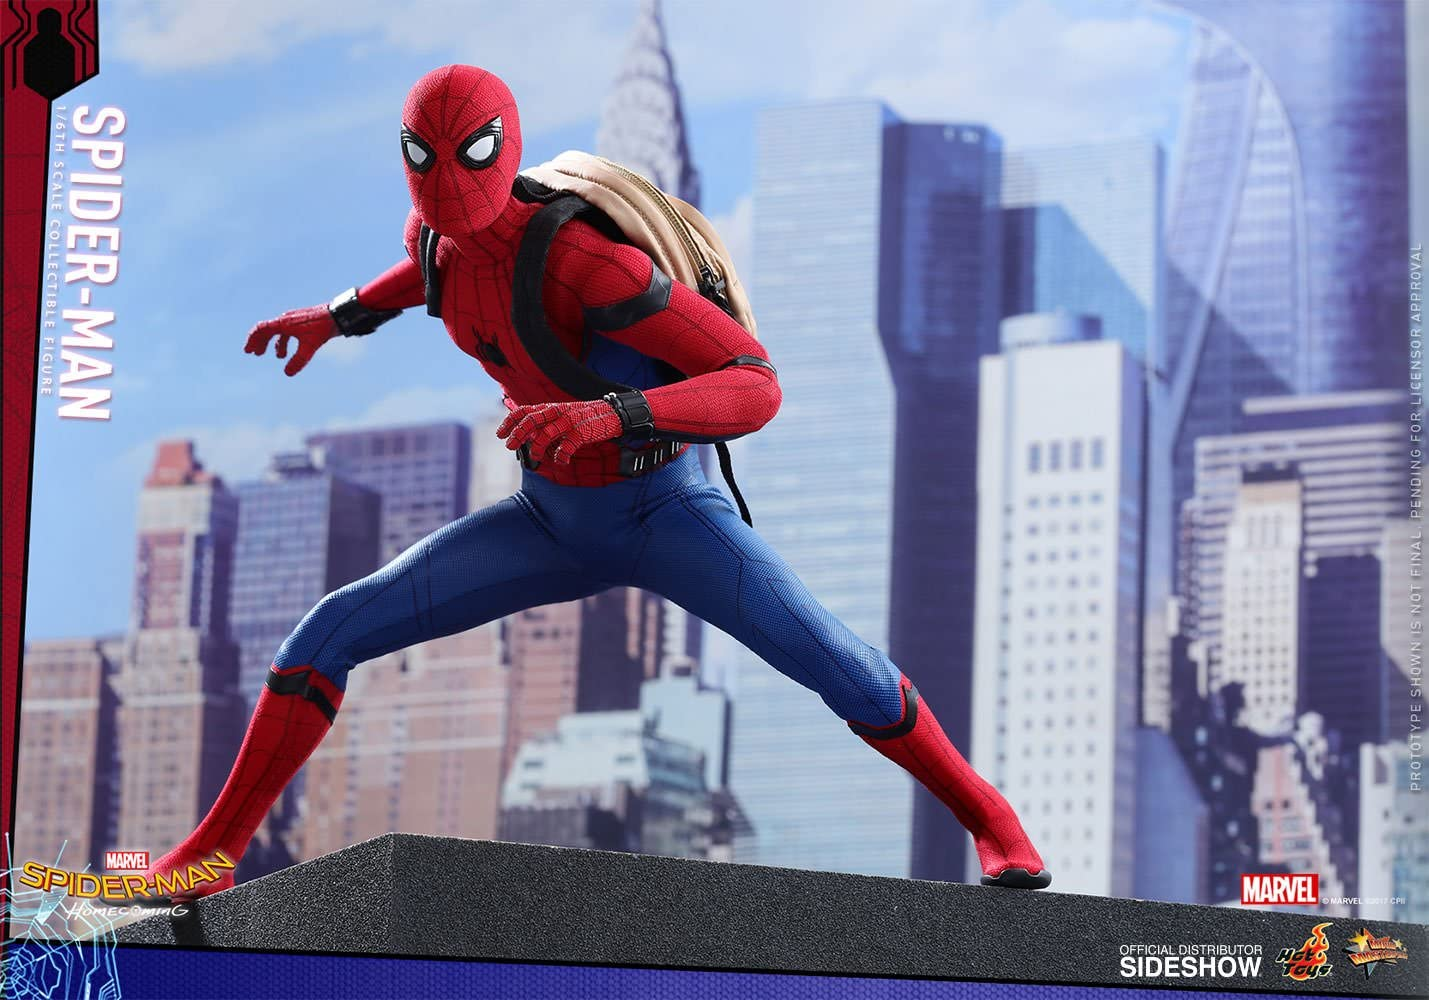 Dee's Collector's World #15: Spider-Man Homecoming-1/6